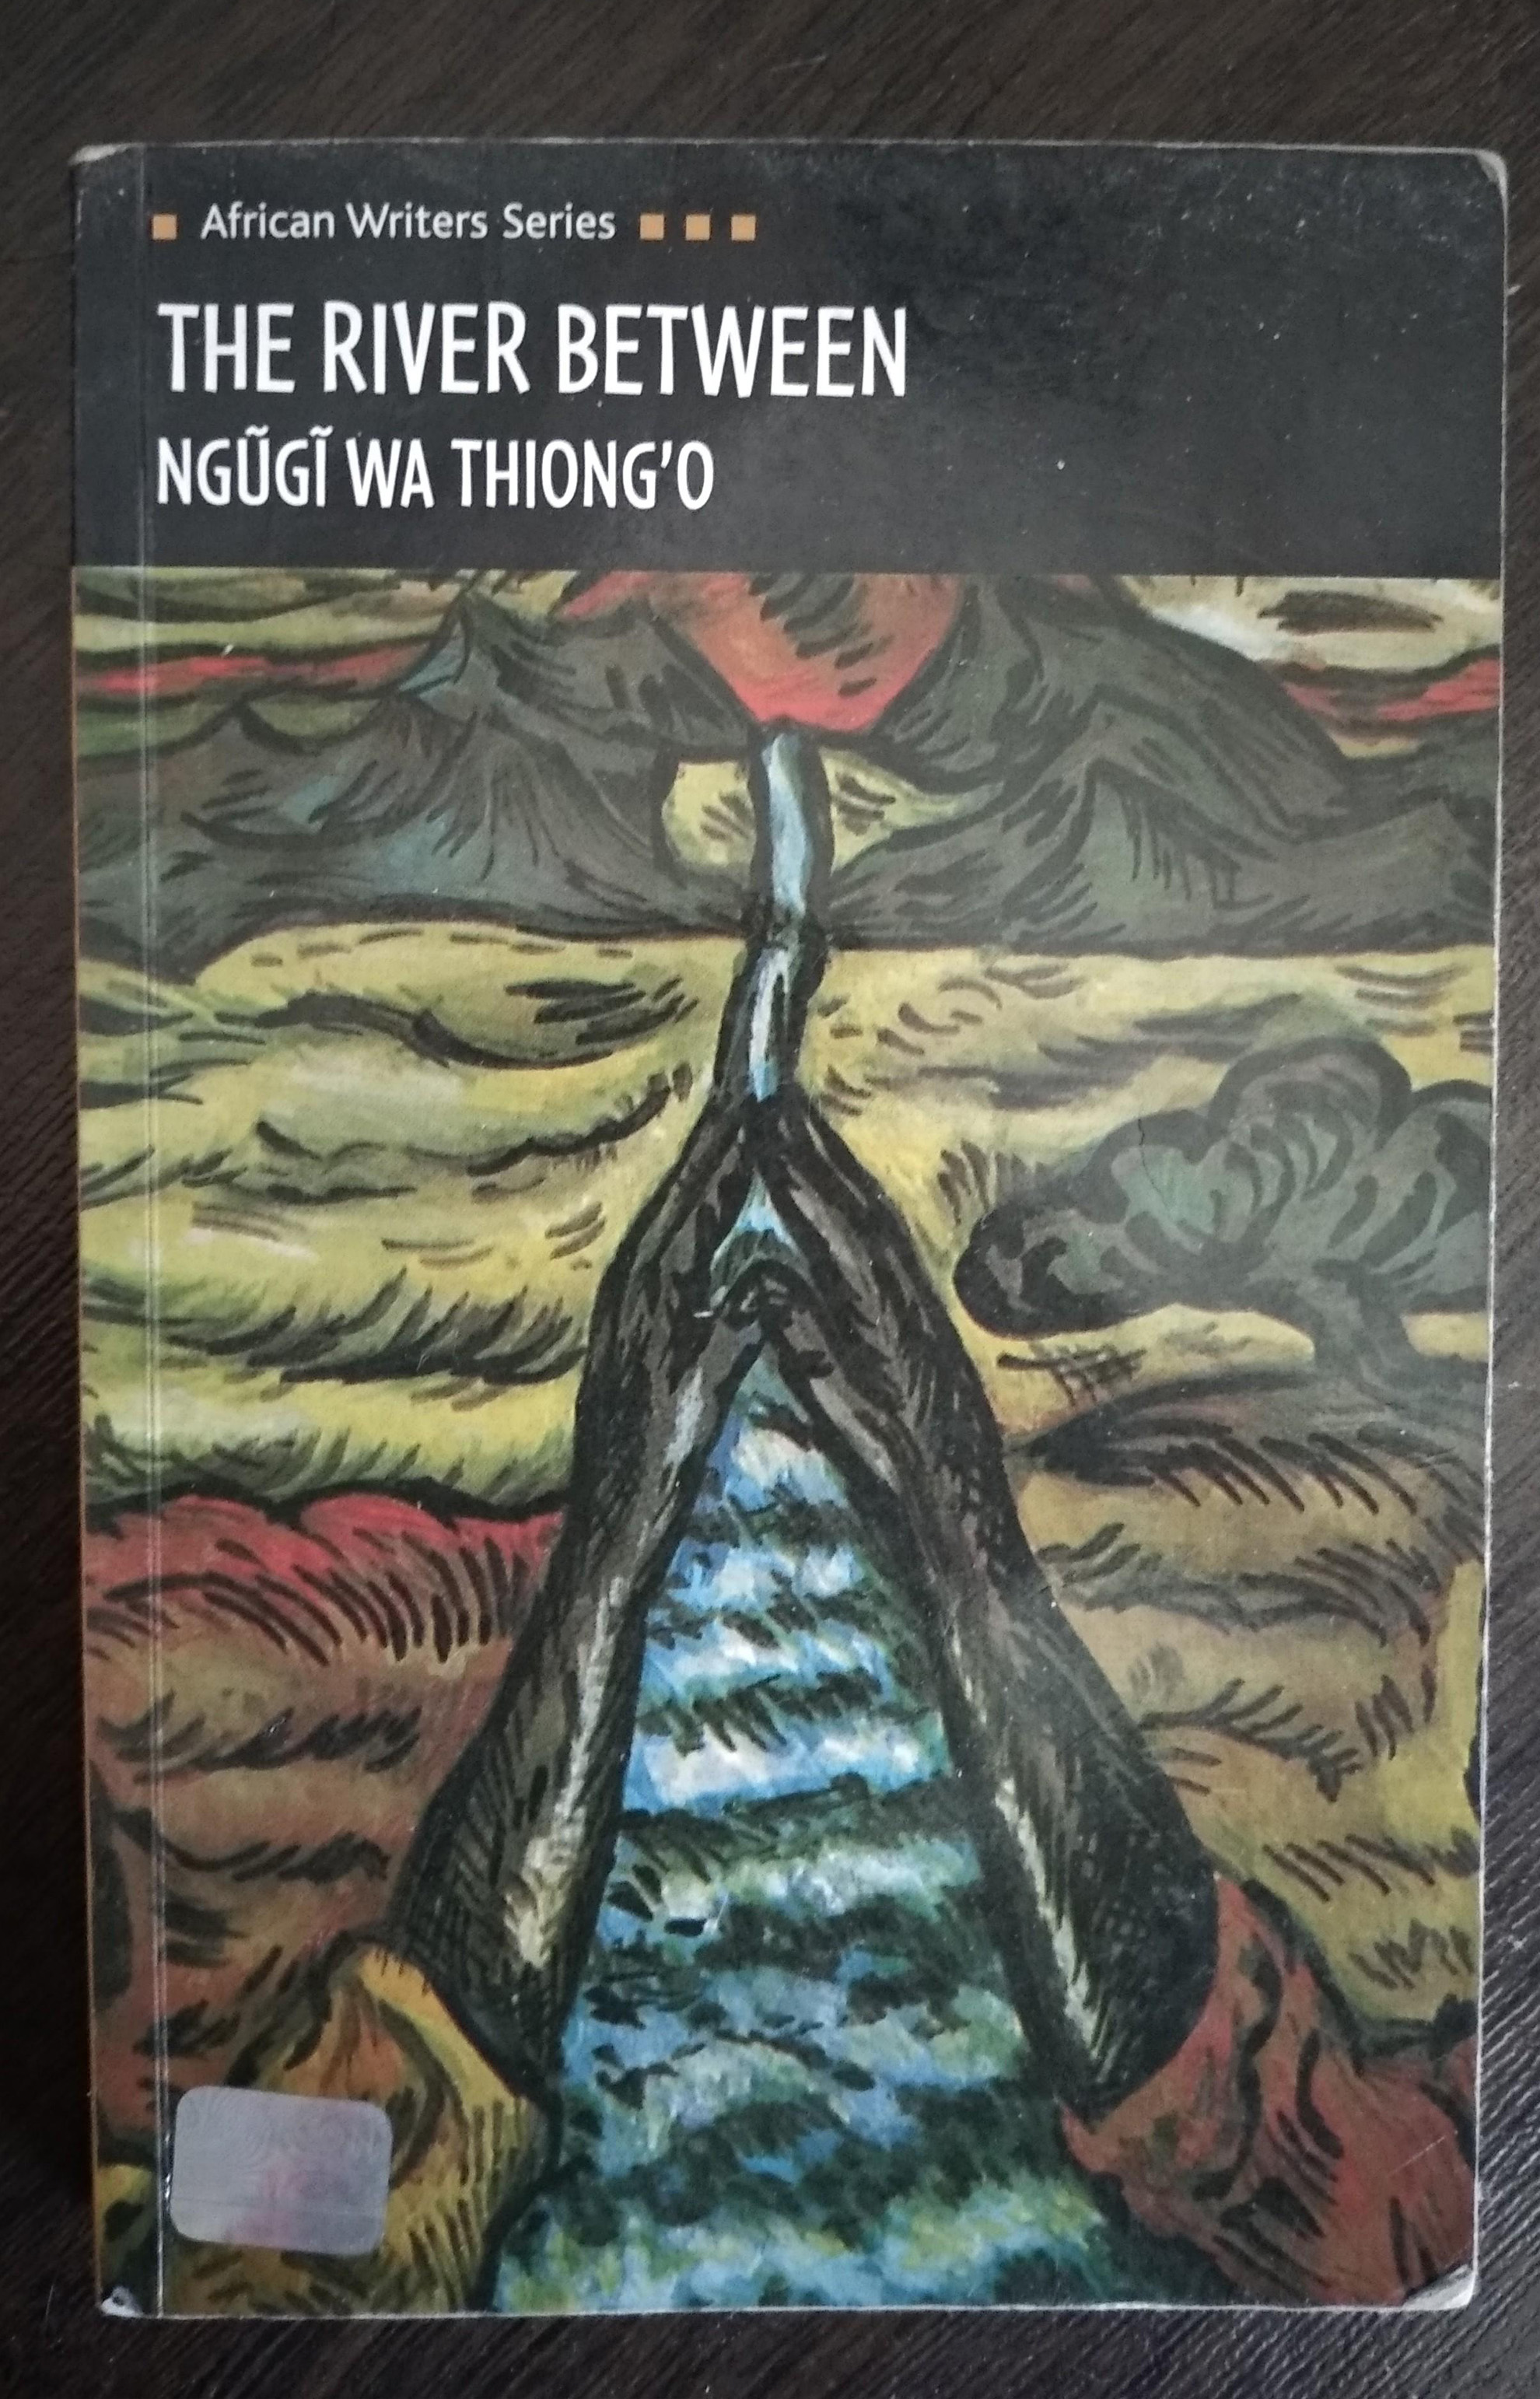 The River Between by Ngũgĩ wa Thiong'o